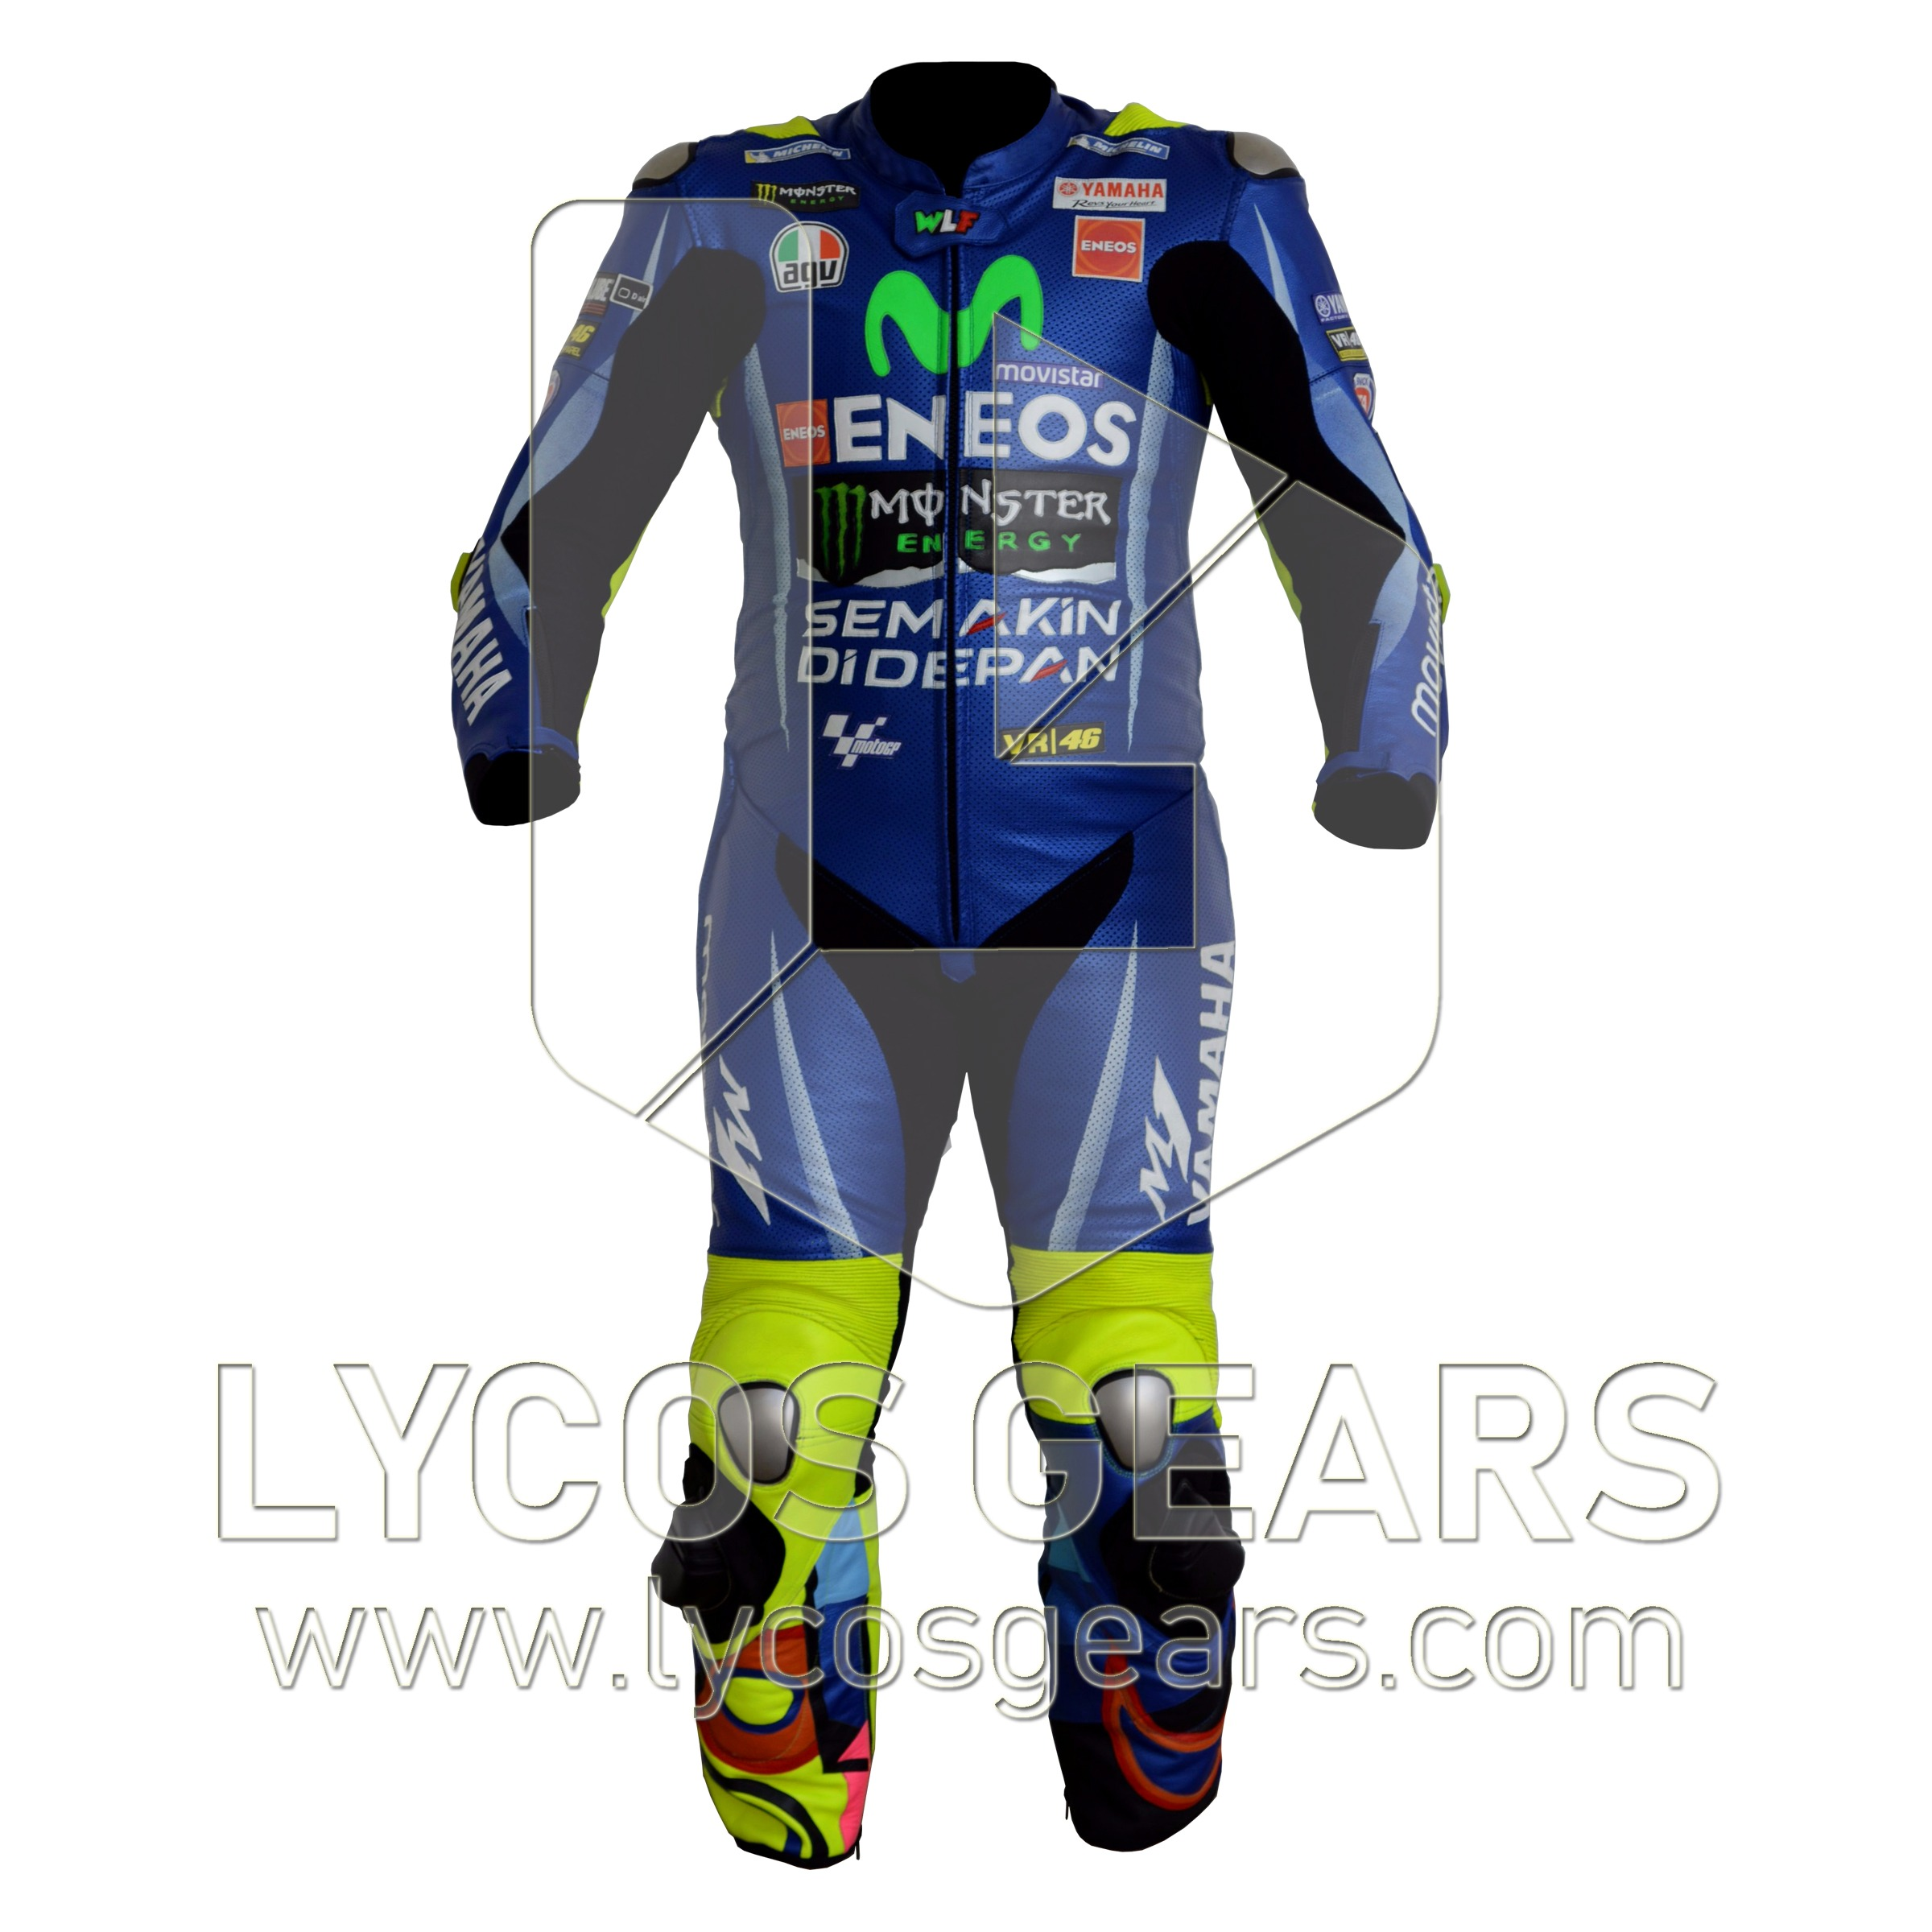 930a196501b3 Valentino Rossi Motorcycle Suit 2017 - Lycos Gears